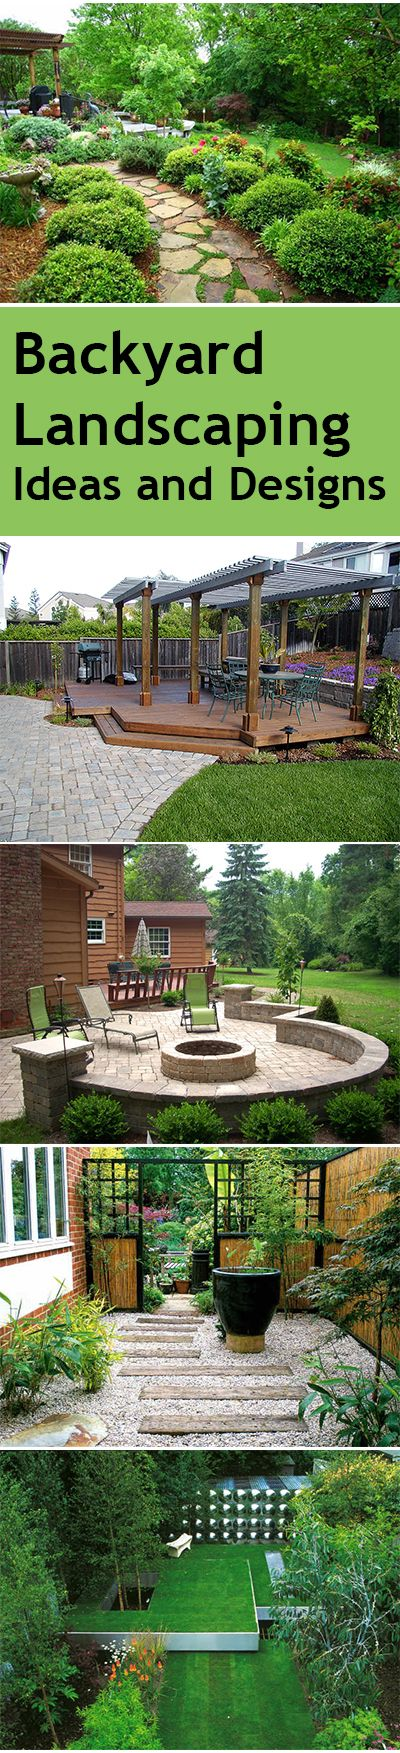 15 amazing backyard landscaping ideas - Garden Ideas Backyard